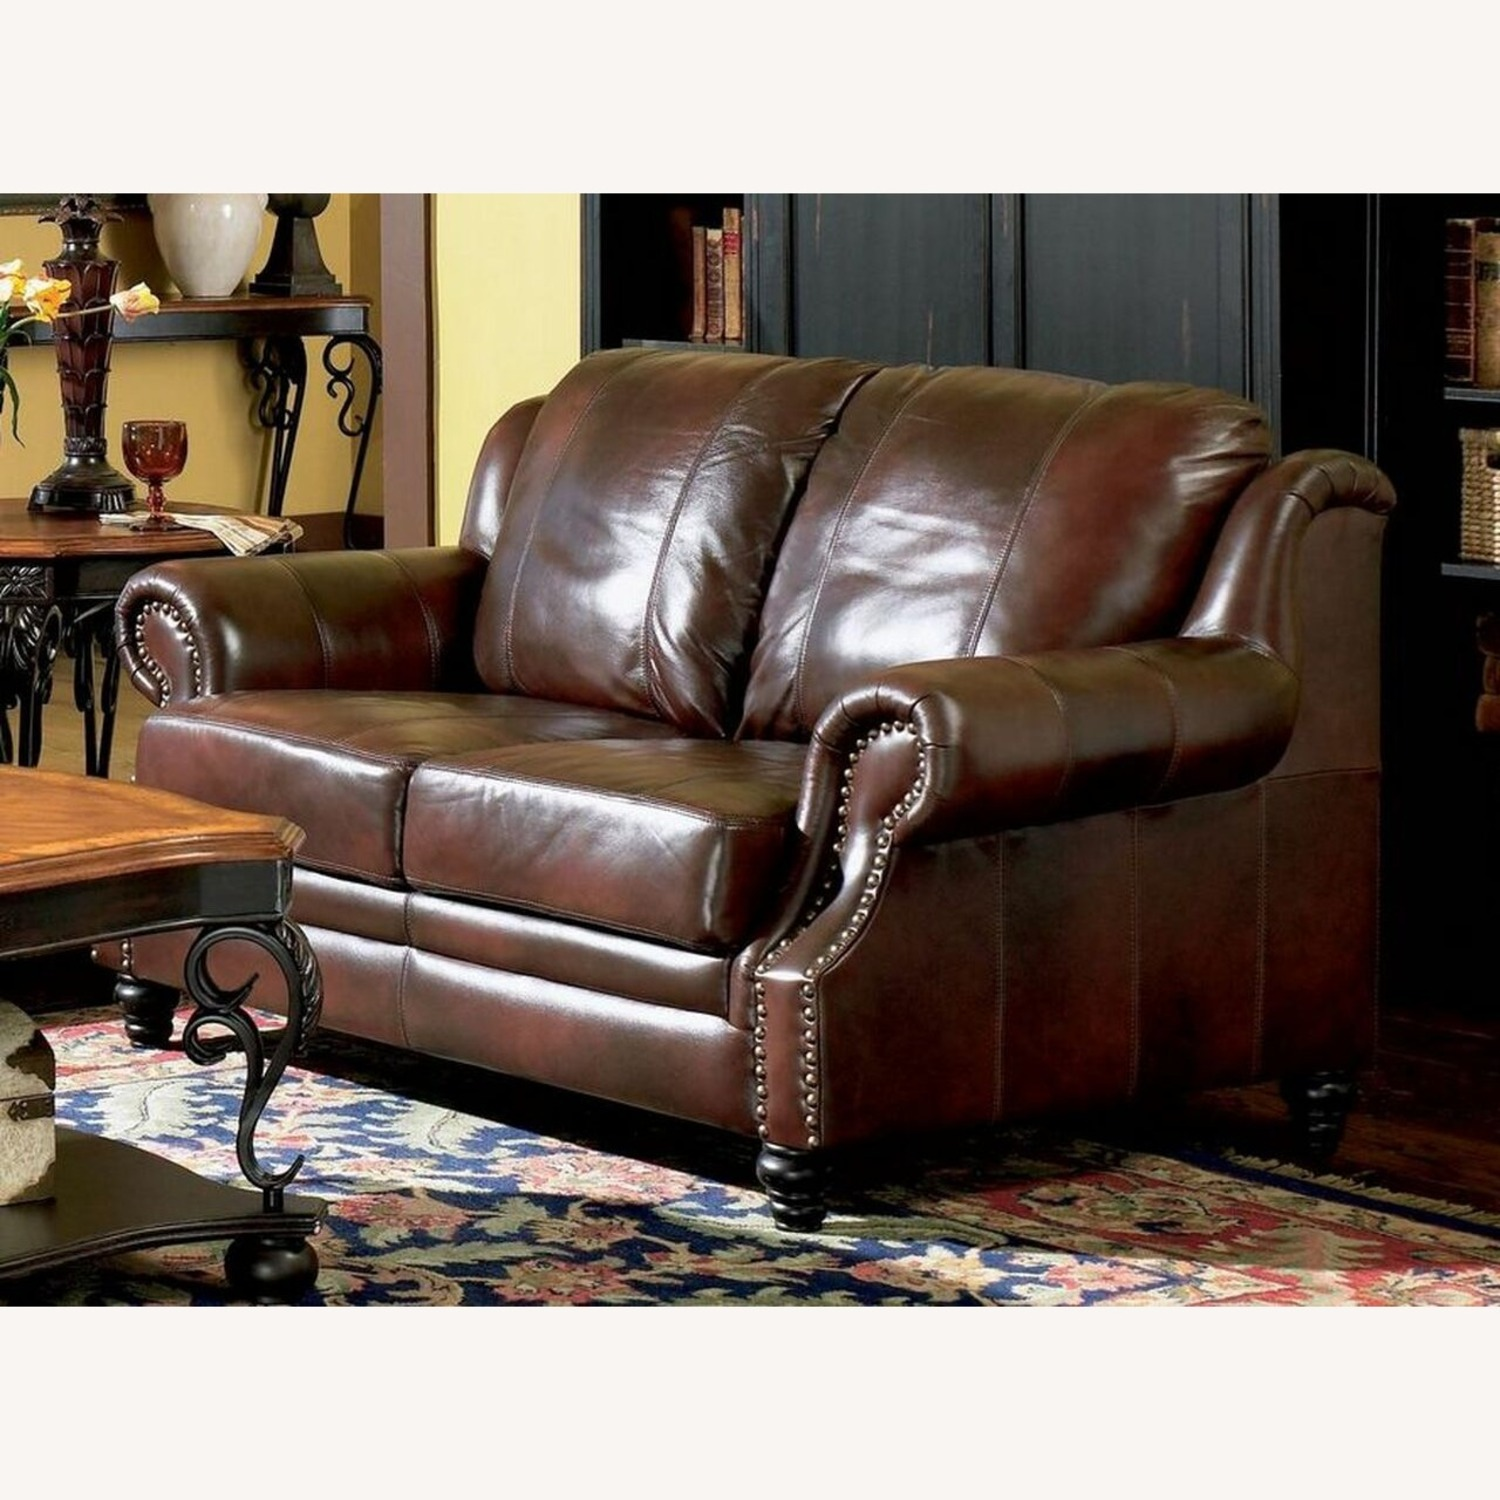 Loveseat In Burgundy Hand Rubbed Leather - image-2